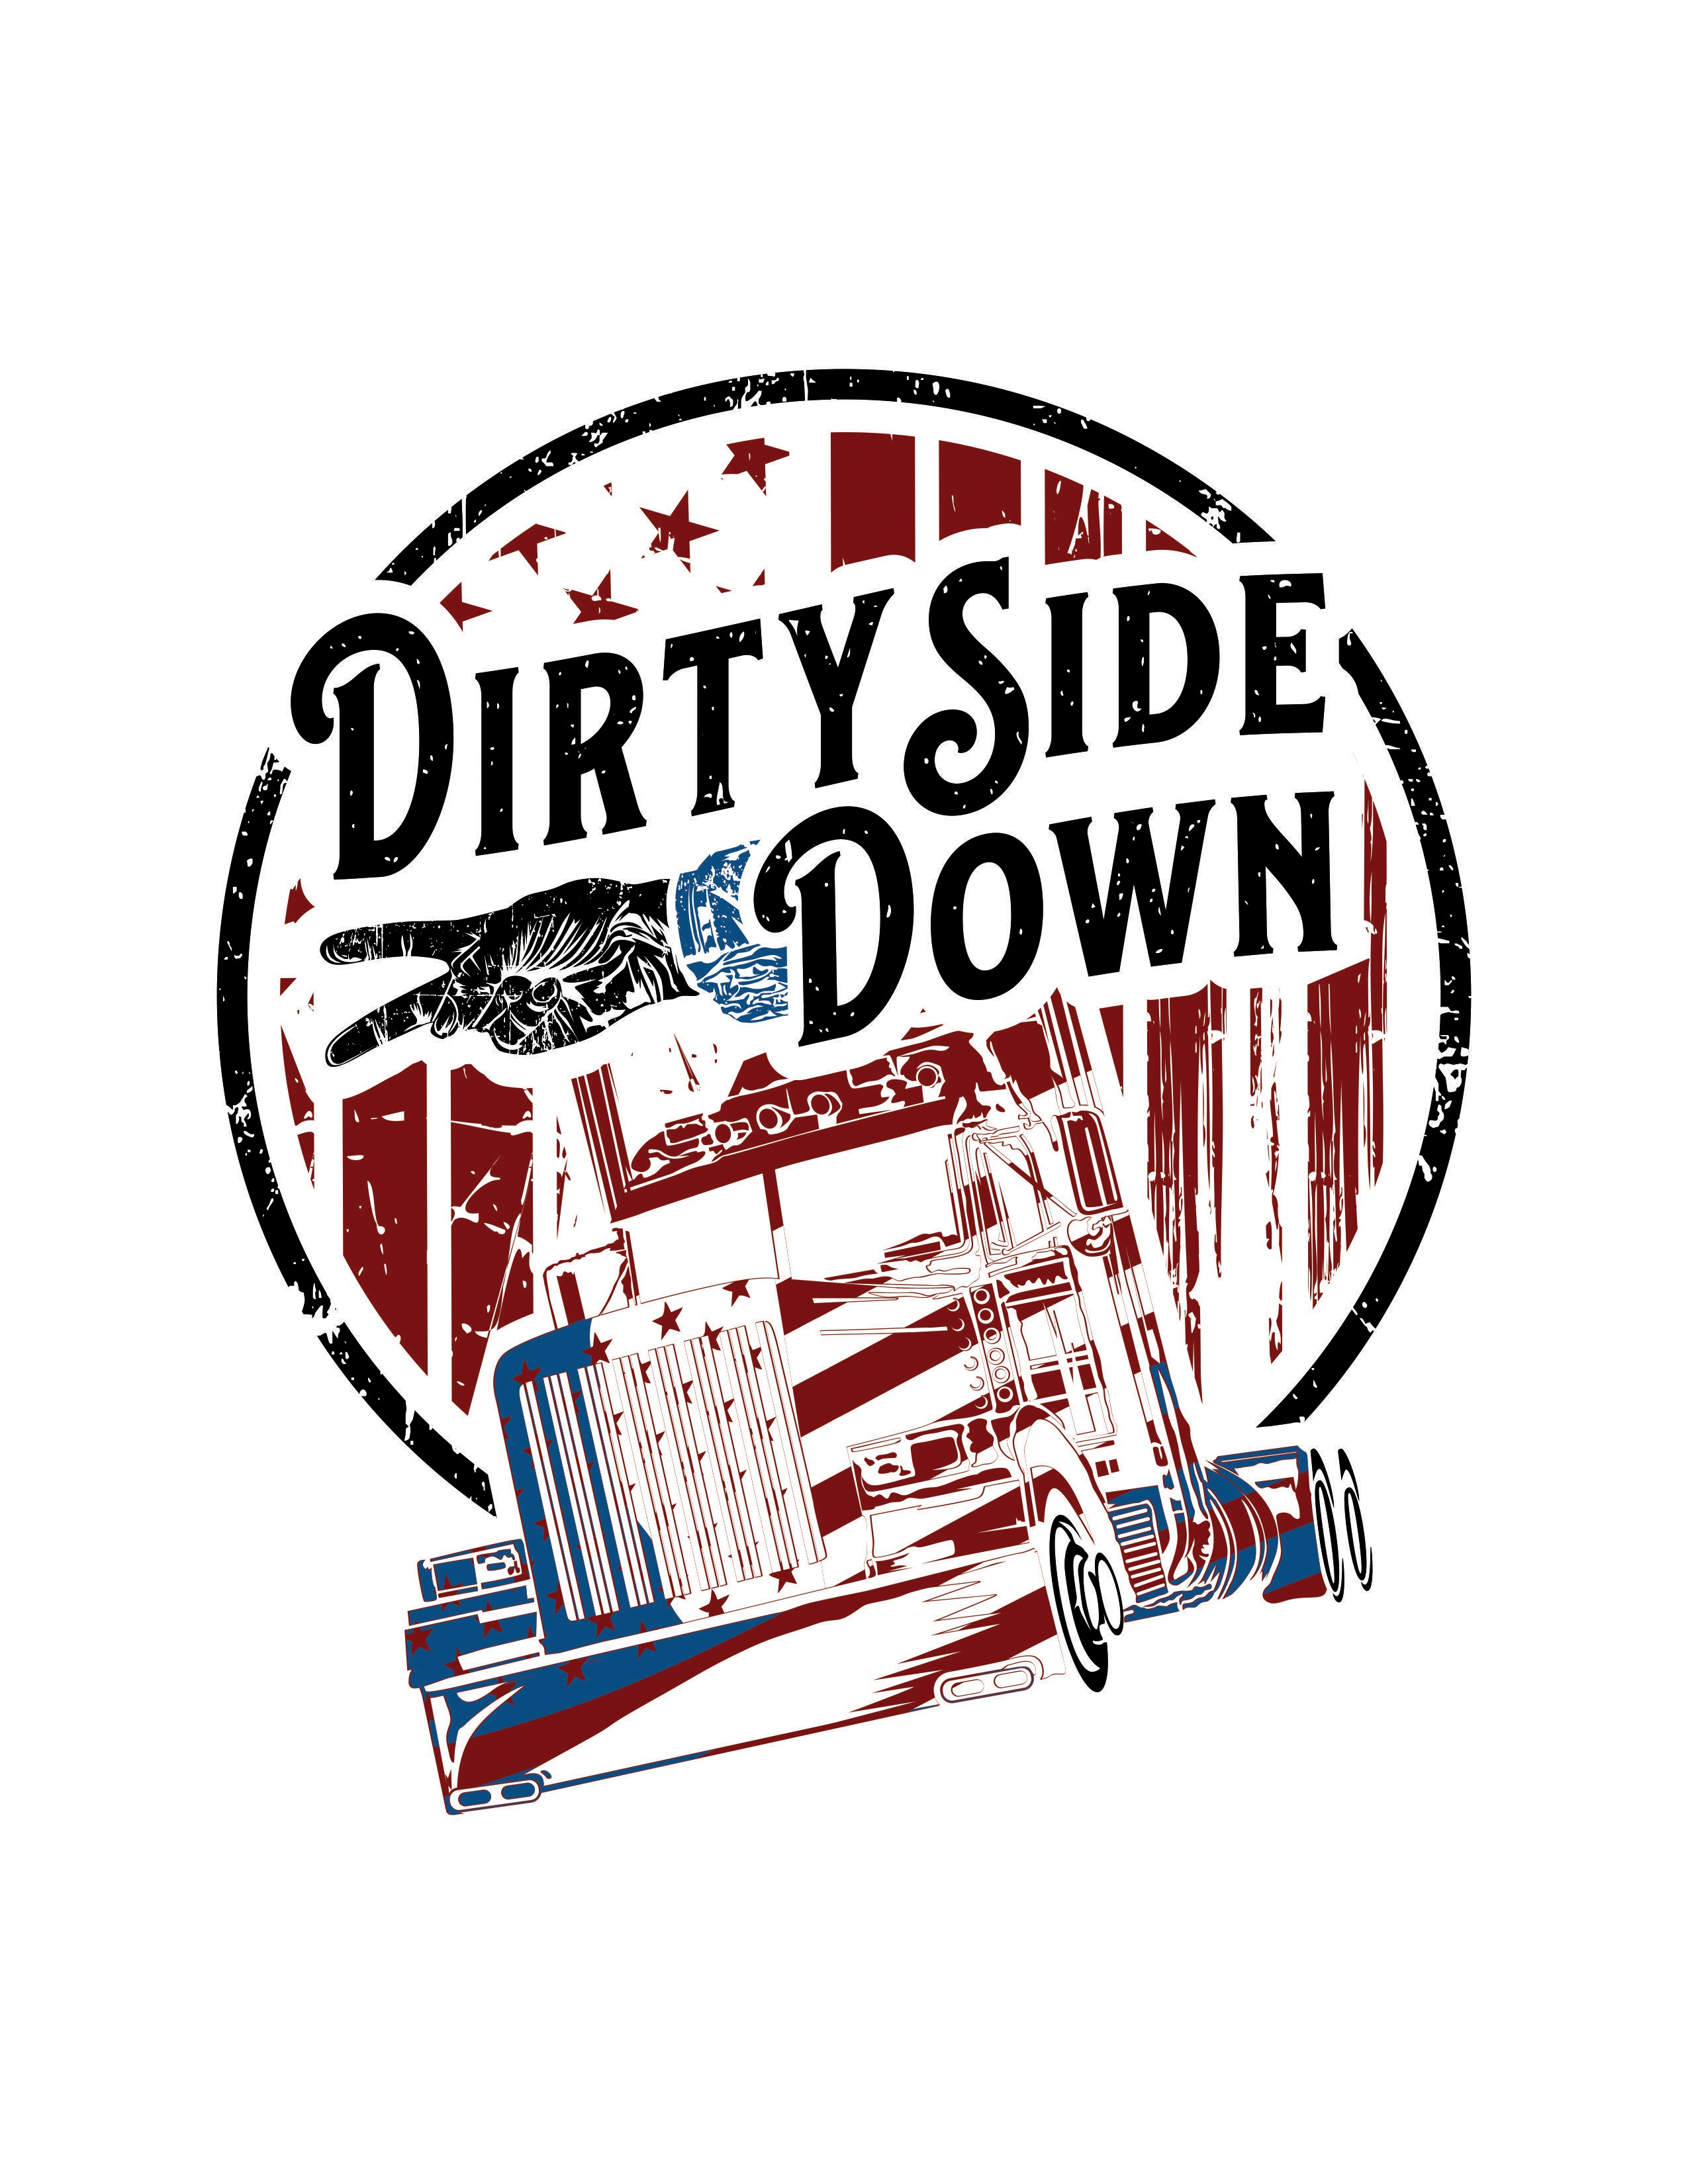 Dirty Side Down design